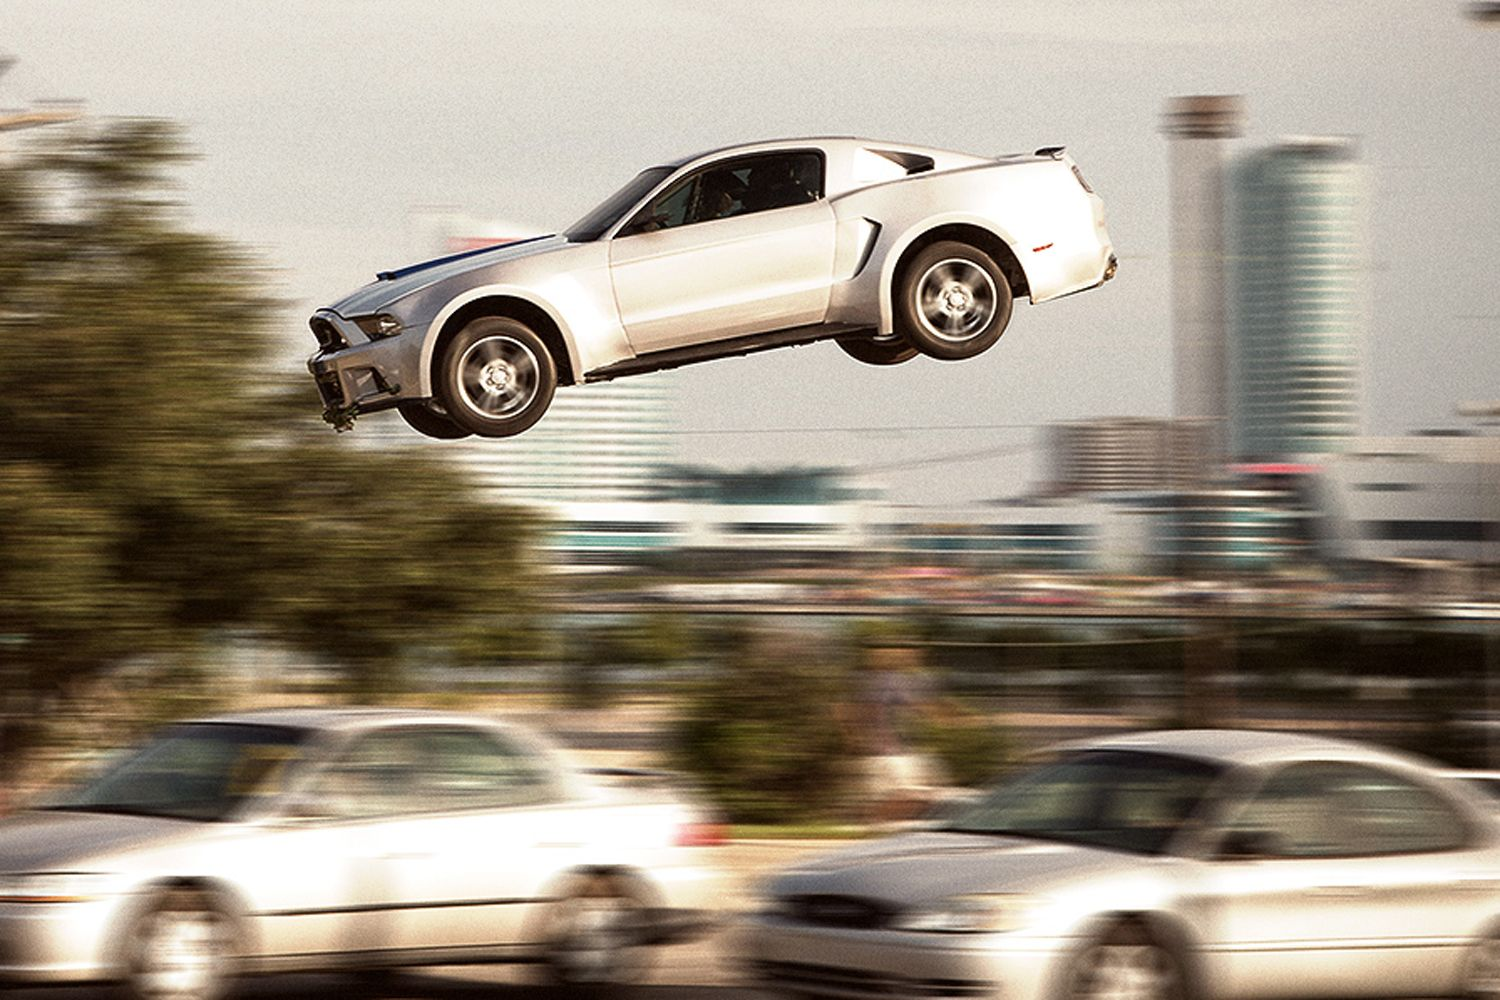 ford mustang flying need for speed movie photo 3 need for speed the movie pinterest photos. Black Bedroom Furniture Sets. Home Design Ideas